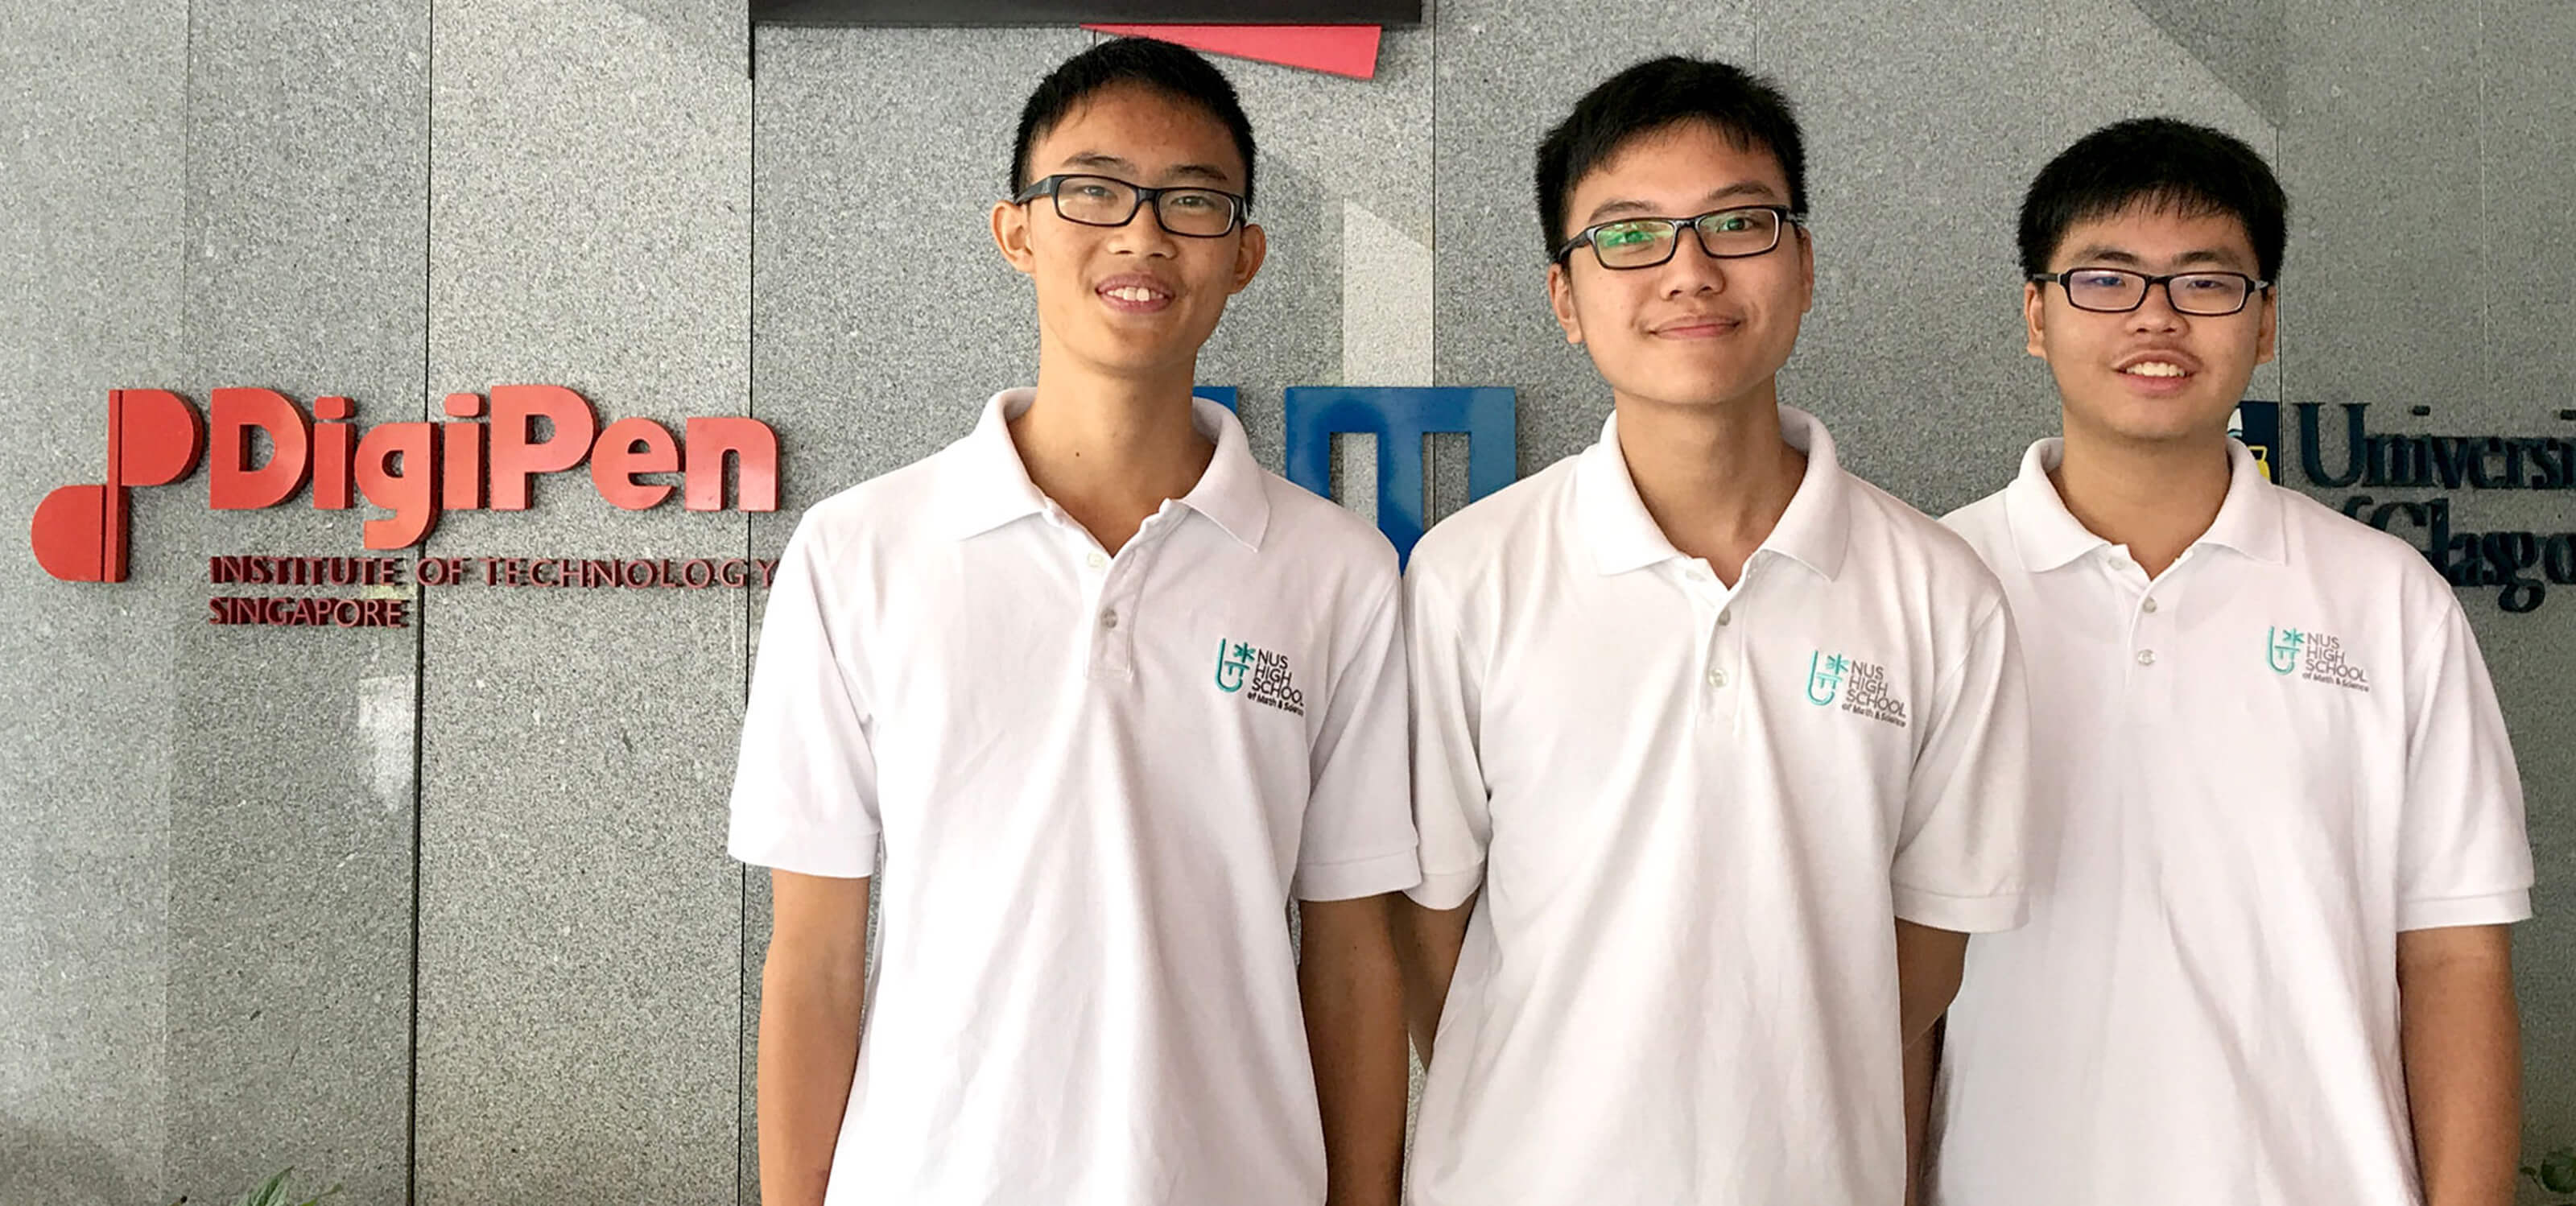 Three students from NUS High School pose for a photo in front of a gray marble wall with the SIT and DigiPen logos